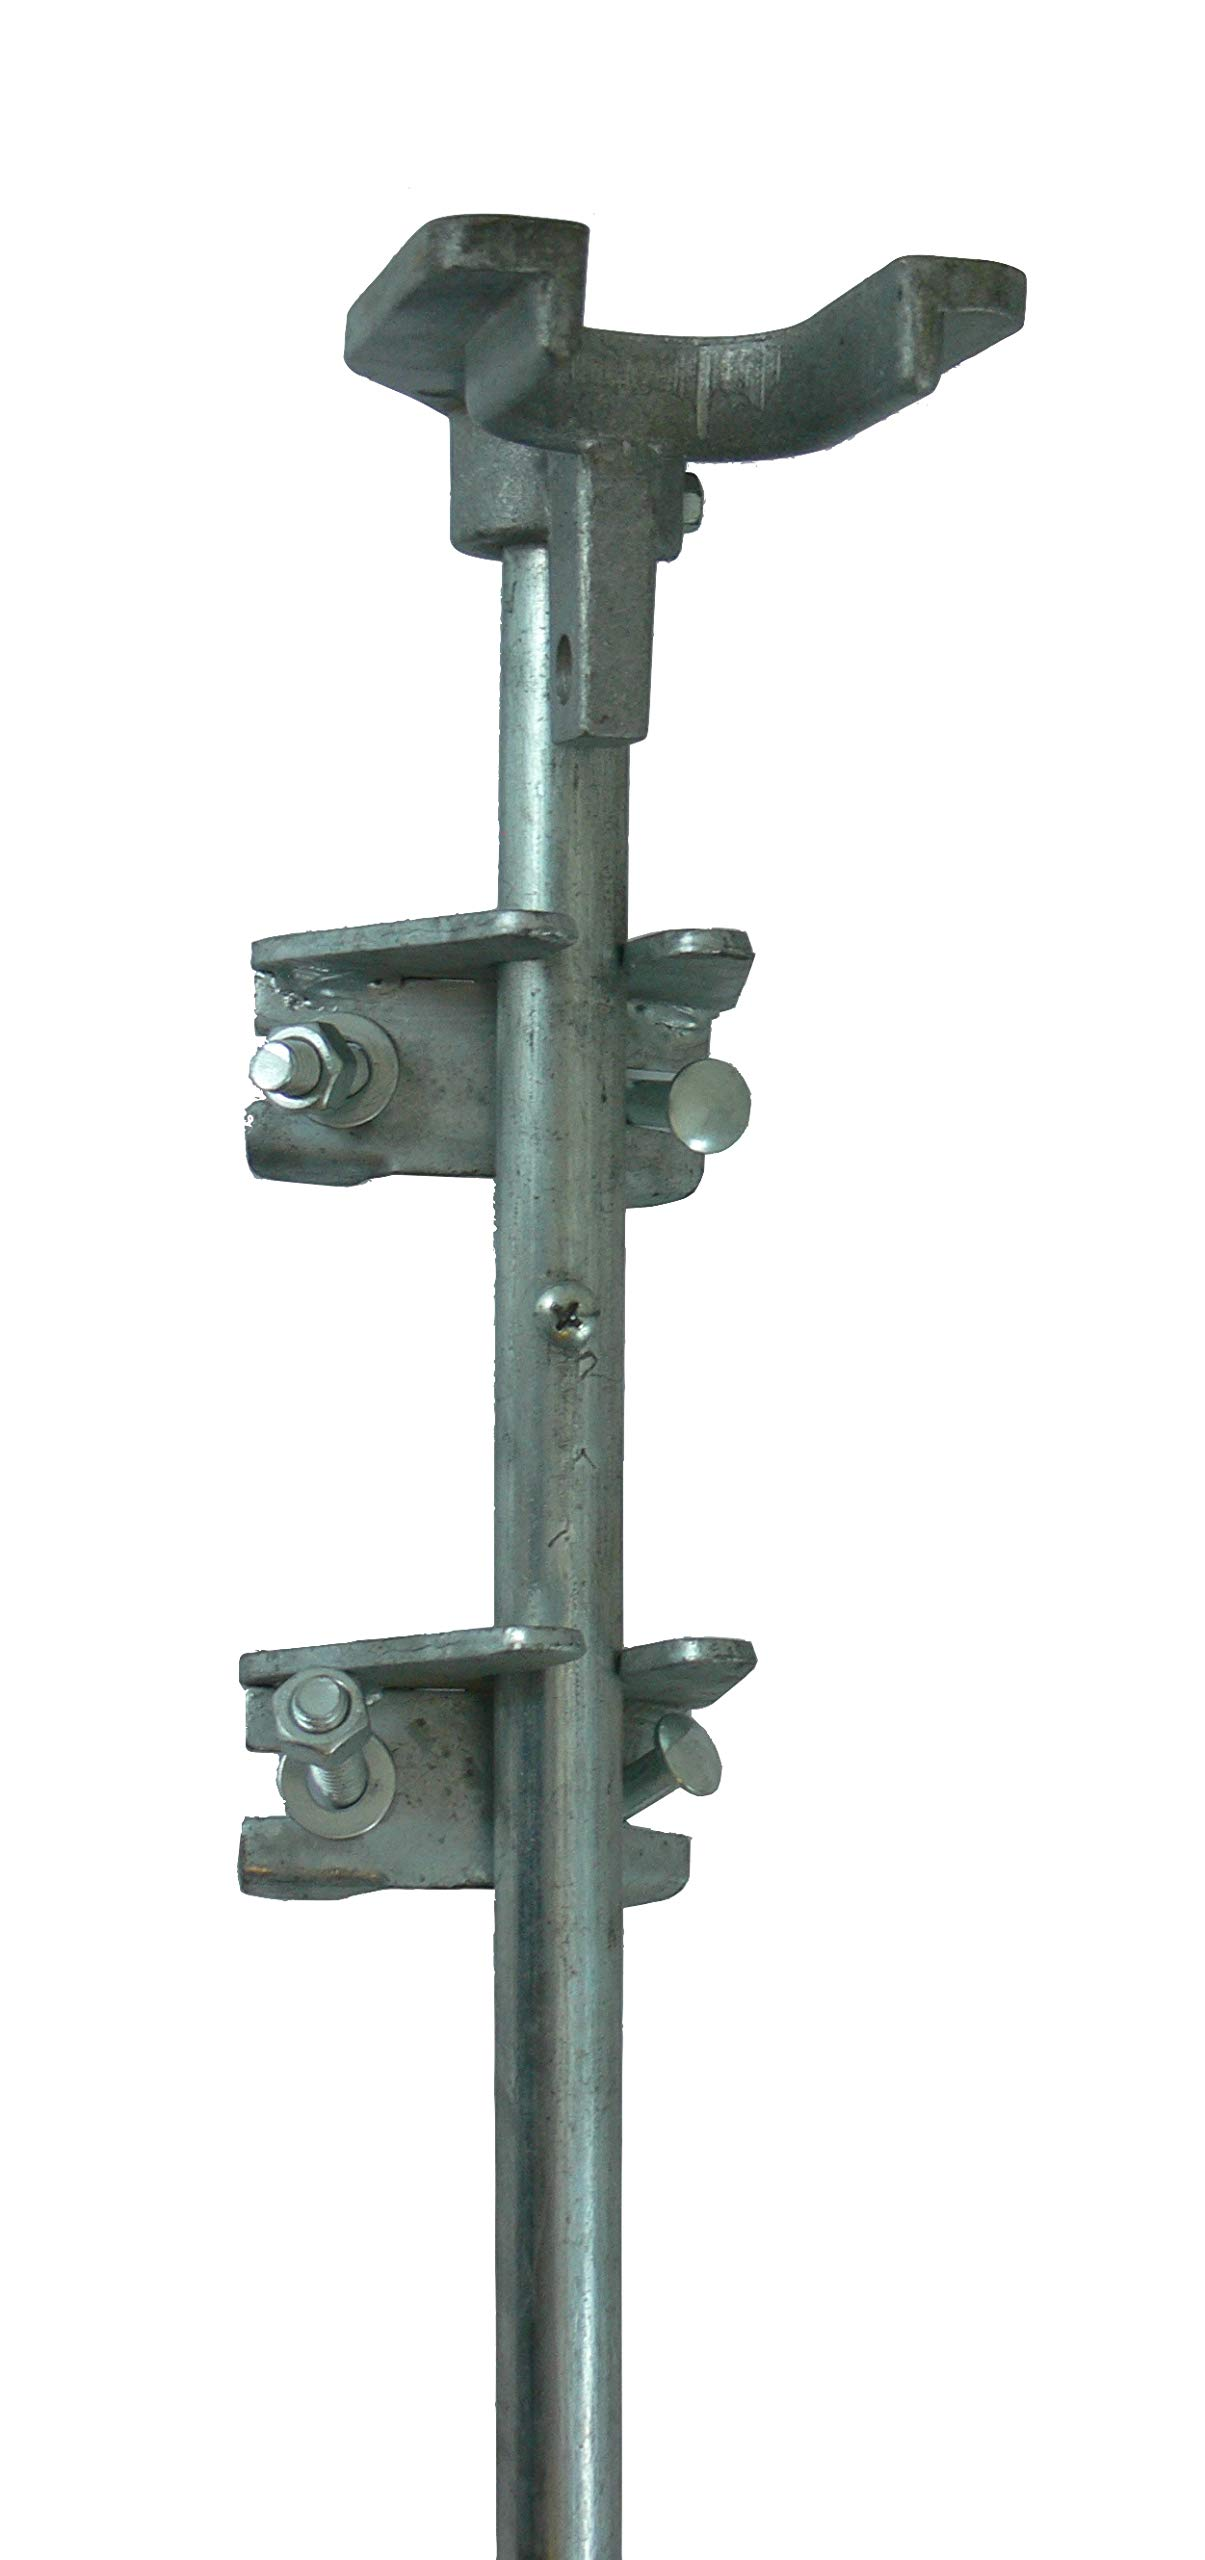 Chain Link Drop Rod/PIN Latch for 1-3/8'' Frame Double Gate - Chain Link Fence. 36'' Long.